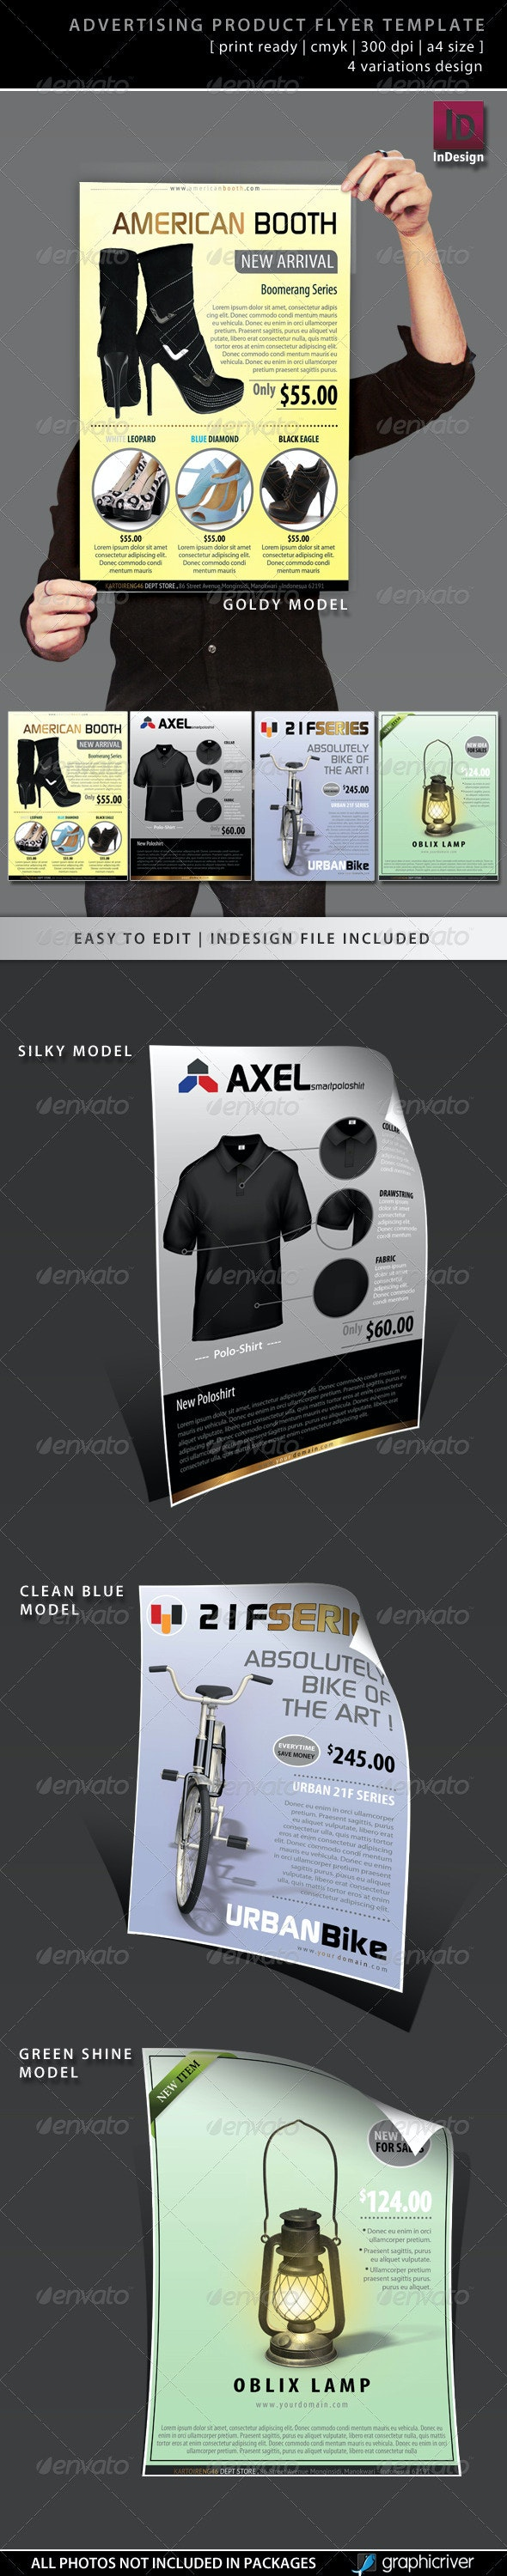 Advertising Product Flyer Template - Commerce Flyers